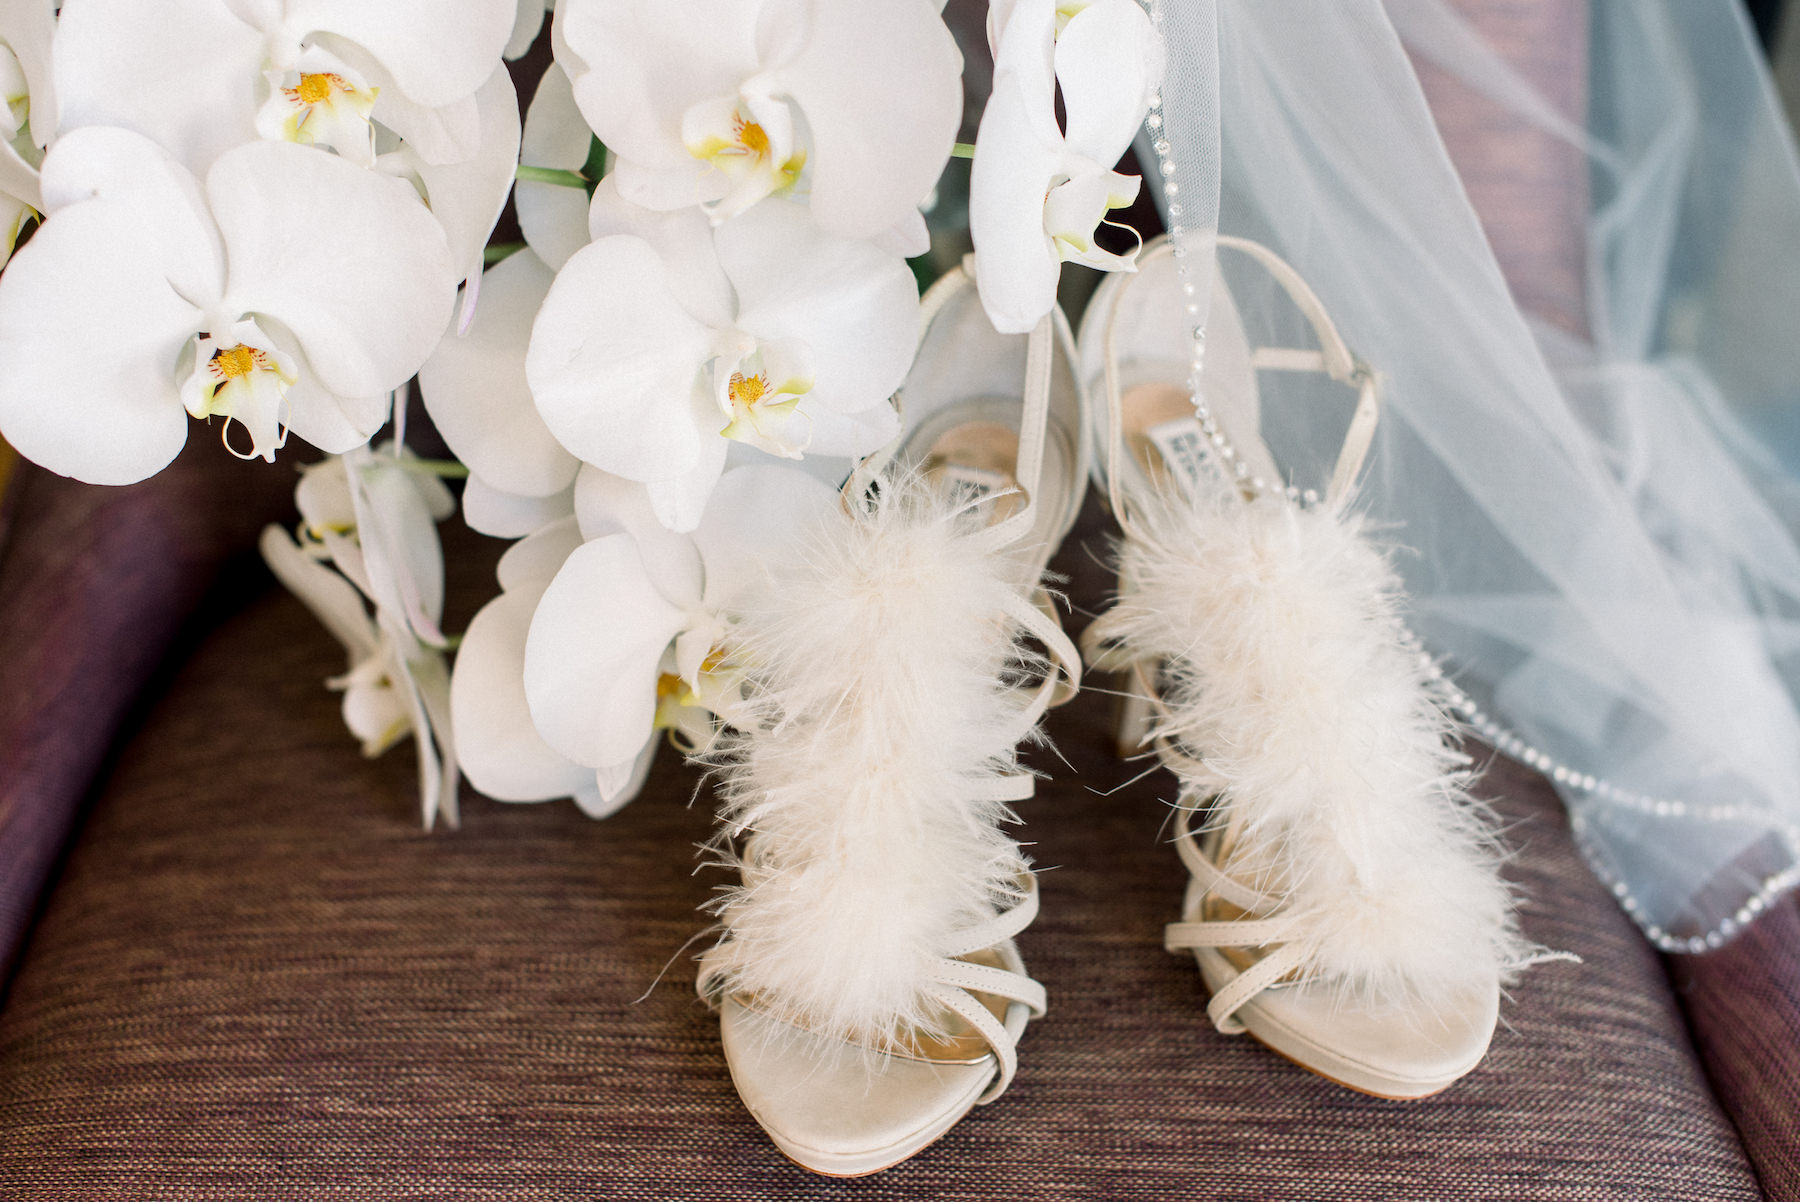 Badgley Mischka Feather and Strappy Ivory Bride Wedding Shoes and White Orchid Flowers | Tampa Wedding Planner Special Moments Event Planning